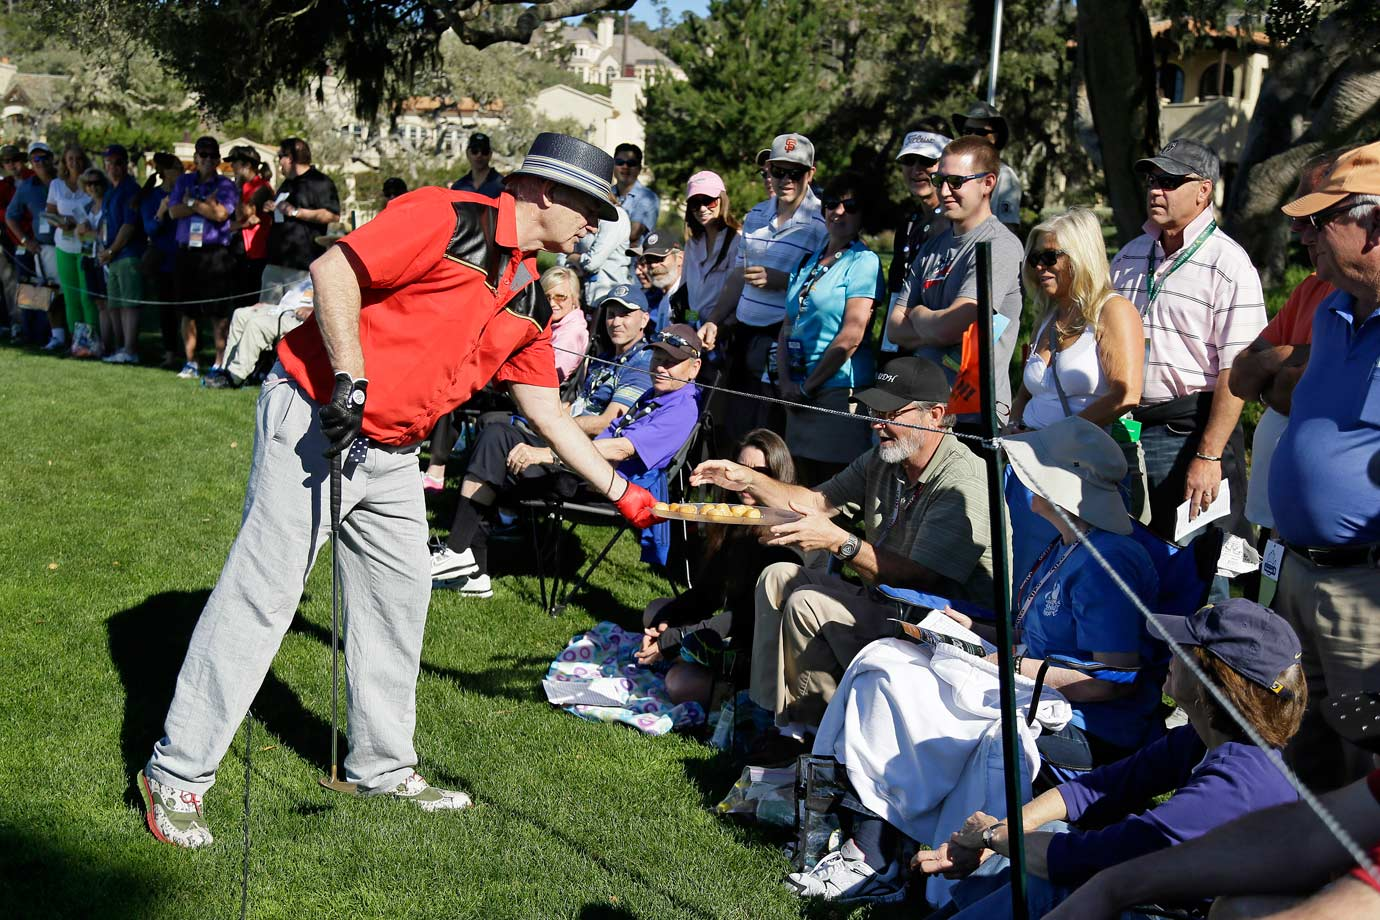 Bill Murray serves a tray of donut holes to fans around the second green during the third round of the AT&T Pebble Beach National Pro-Am golf tournament on Feb. 14, 2015 in Pebble Beach, Calif.